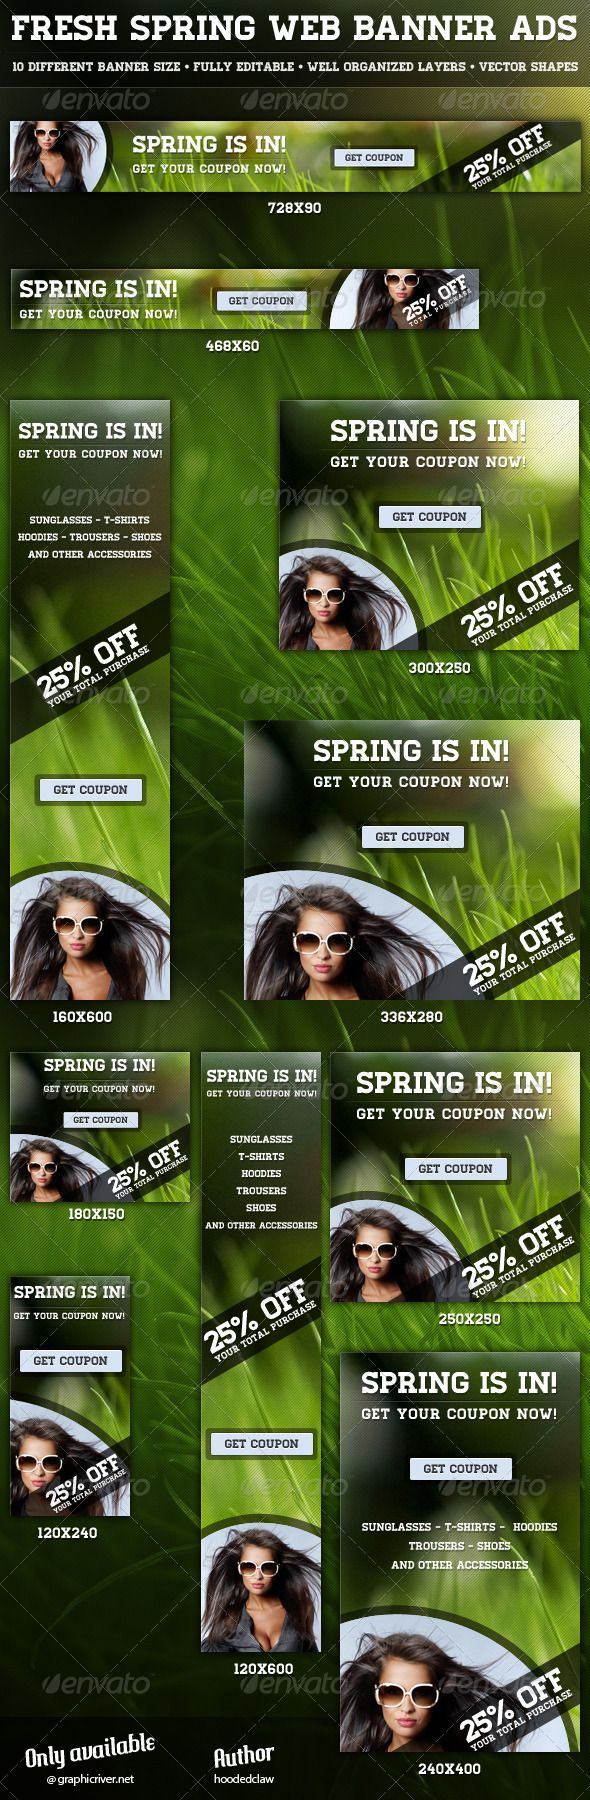 Fresh Spring Web Banner Ads Template PSD | Buy and Download: http://graphicriver.net/item/fresh-spring-web-banner-ads/4166630?WT.ac=category_thumb&WT.z_author=hoodedclaw&ref=ksioks